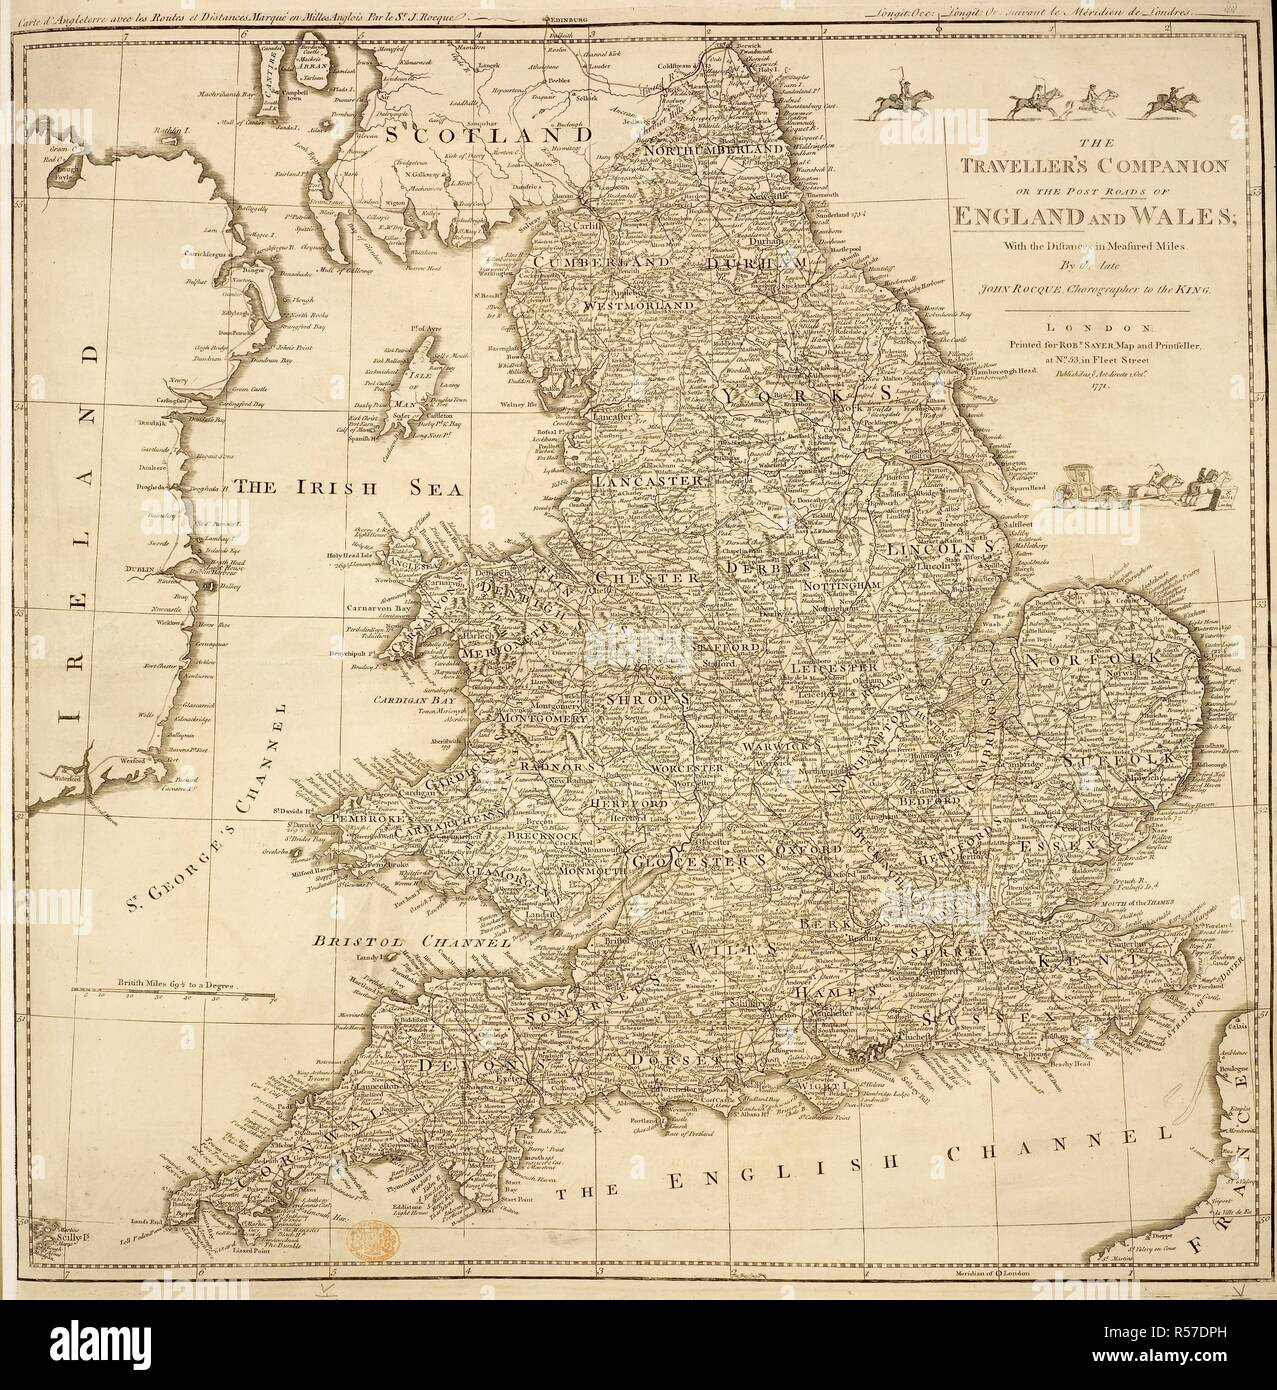 Map Of England Roads.A Map Of England And Wales The Traveller S Companion Or The Post